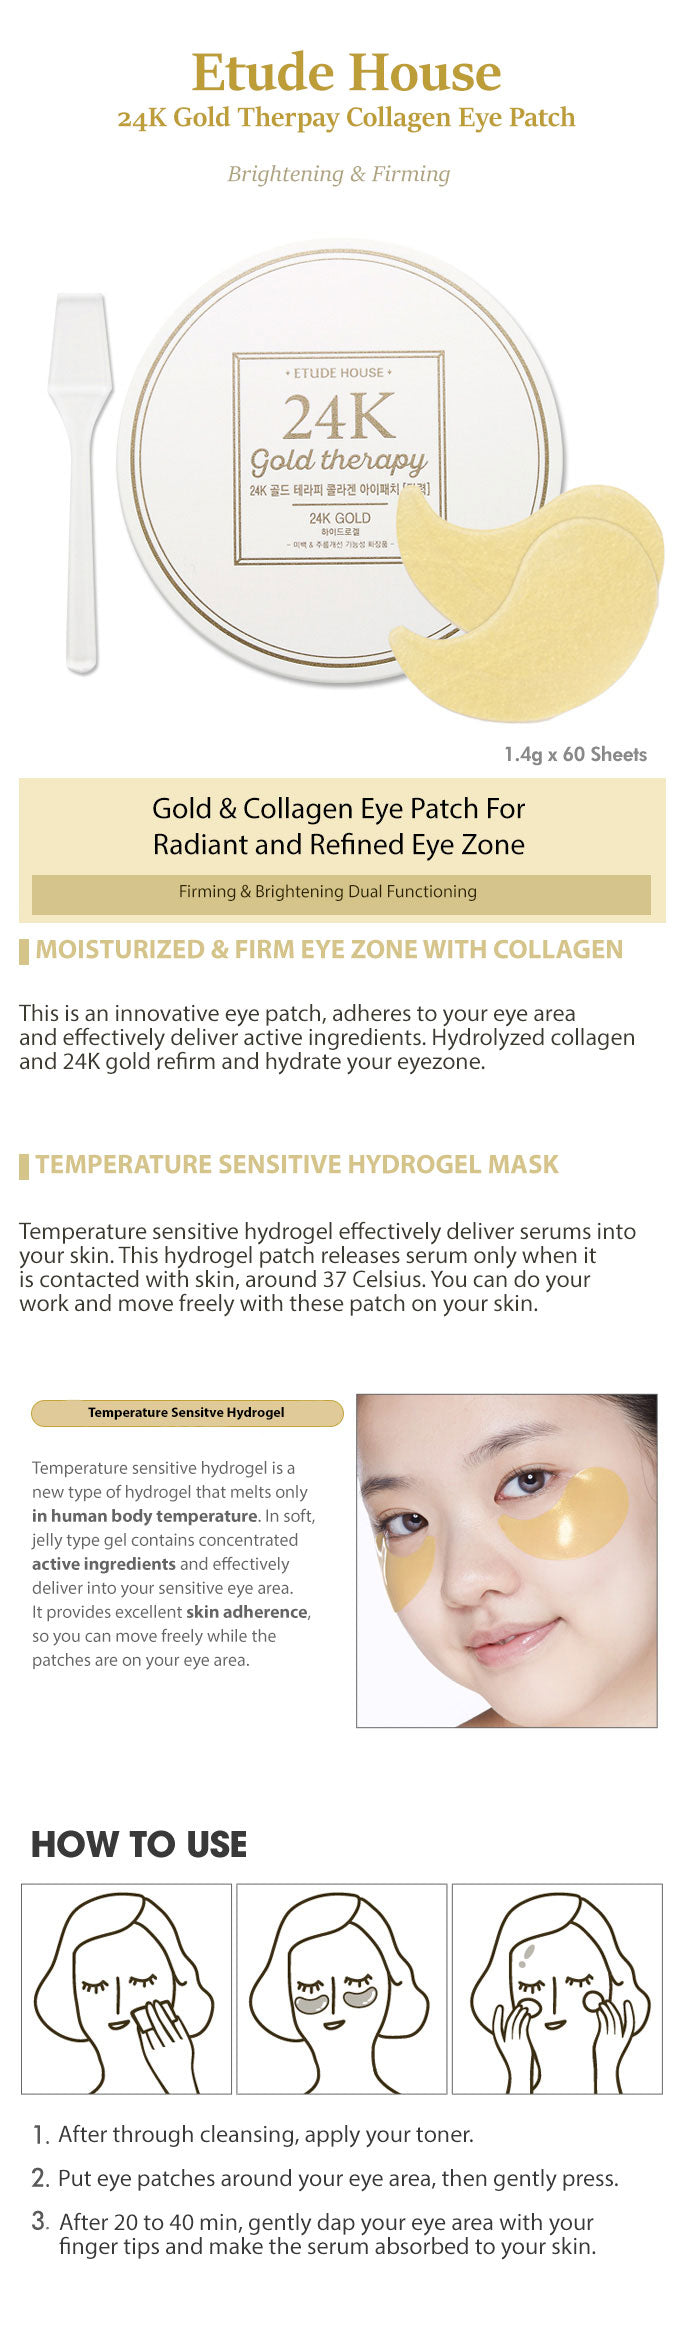 Etude House 24K Gold Theraphy Collagen Eye Patch